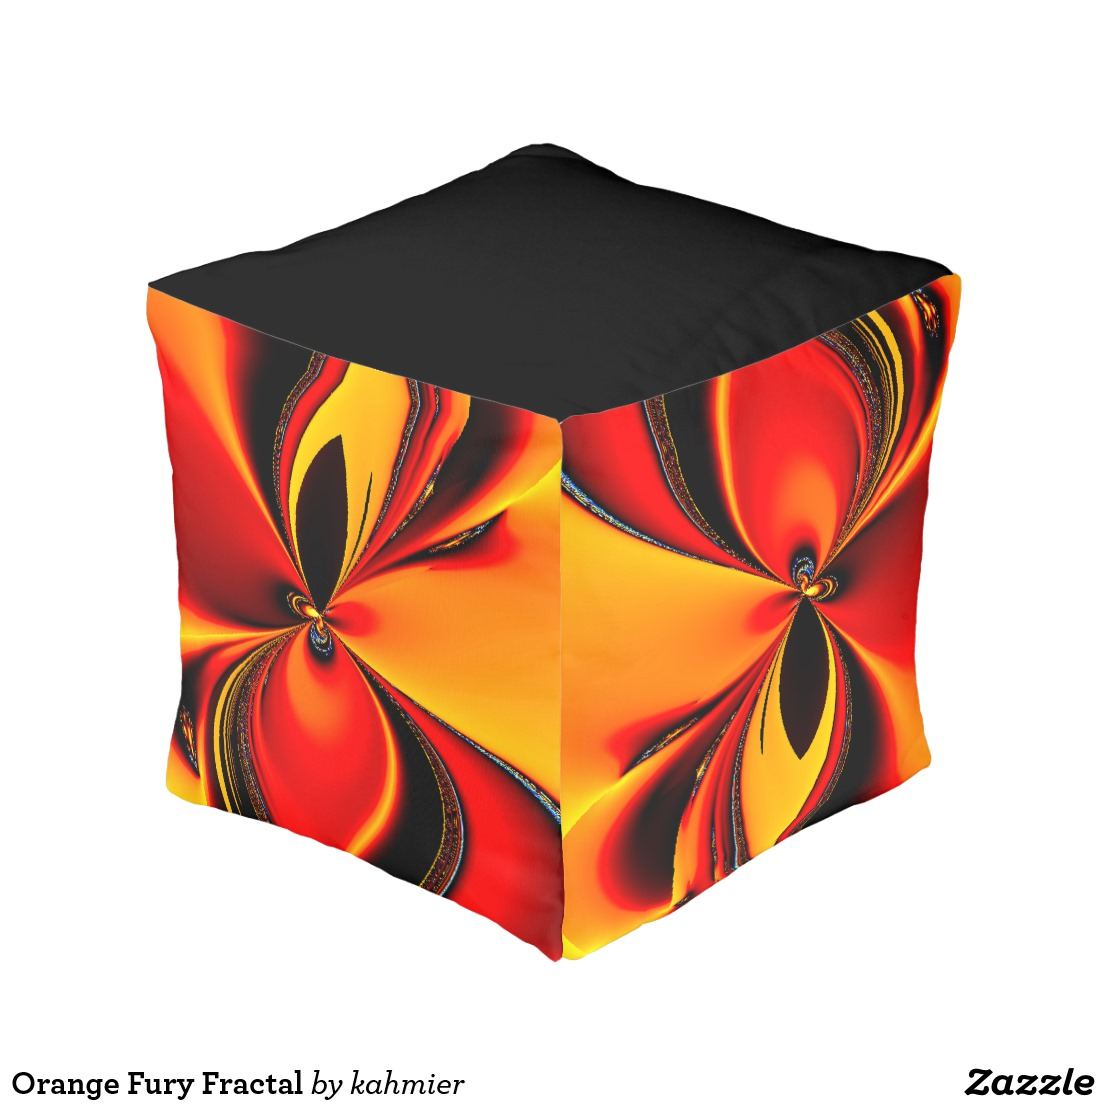 Orange Fury Fractal Pouf